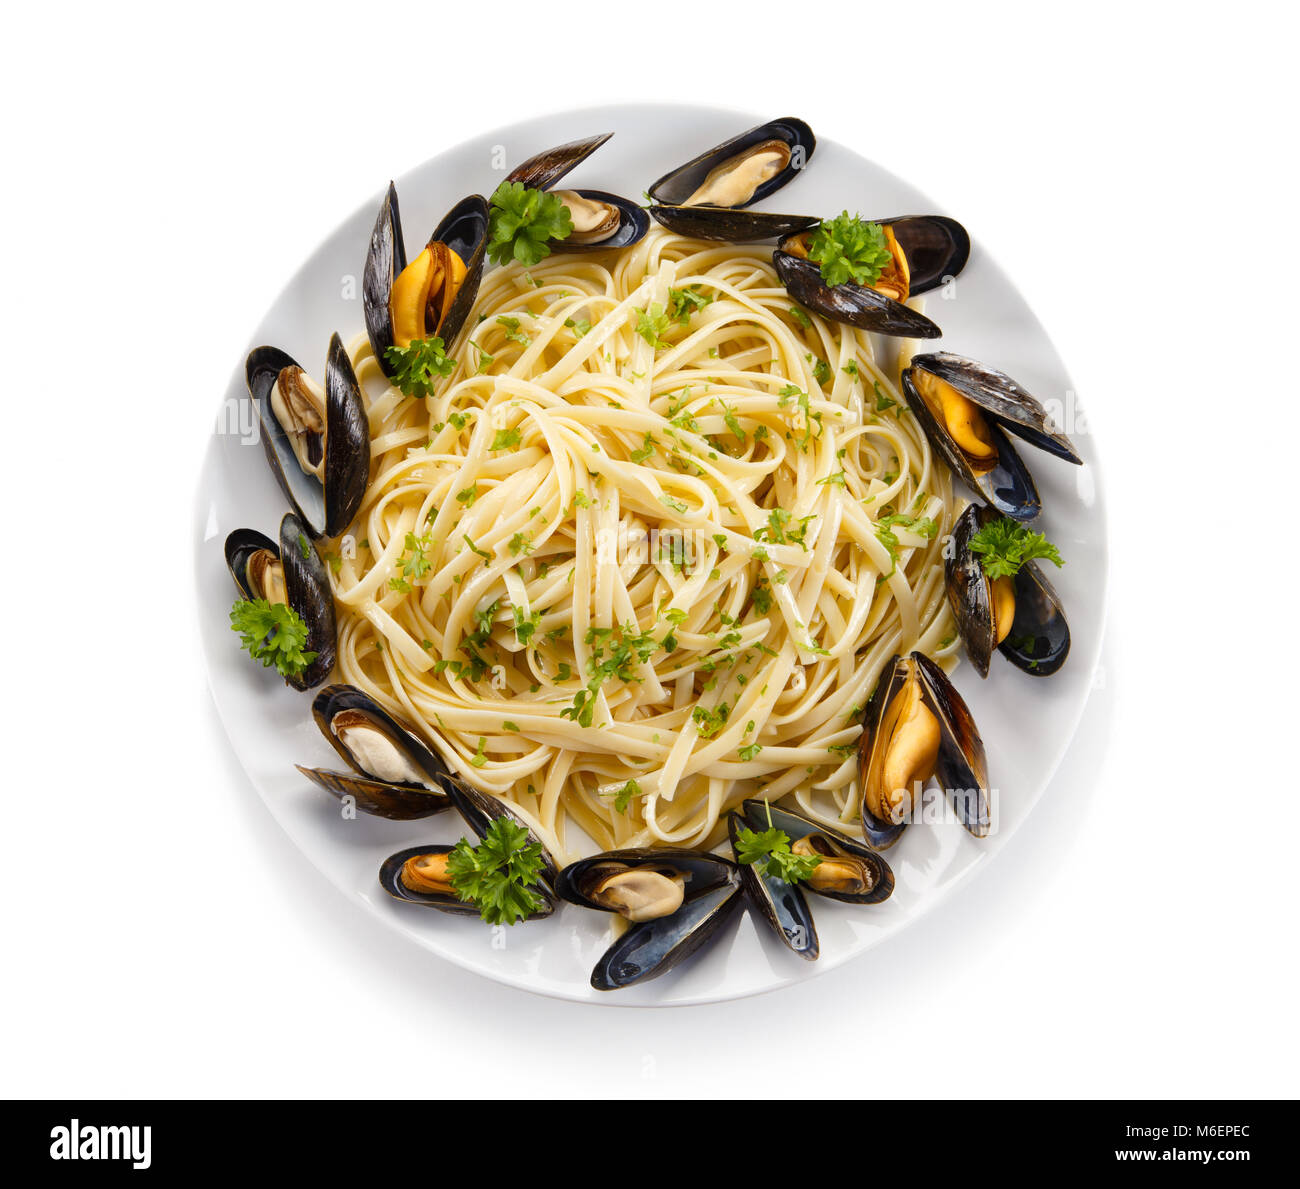 Cooked mussels and pasta on white background Stock Photo